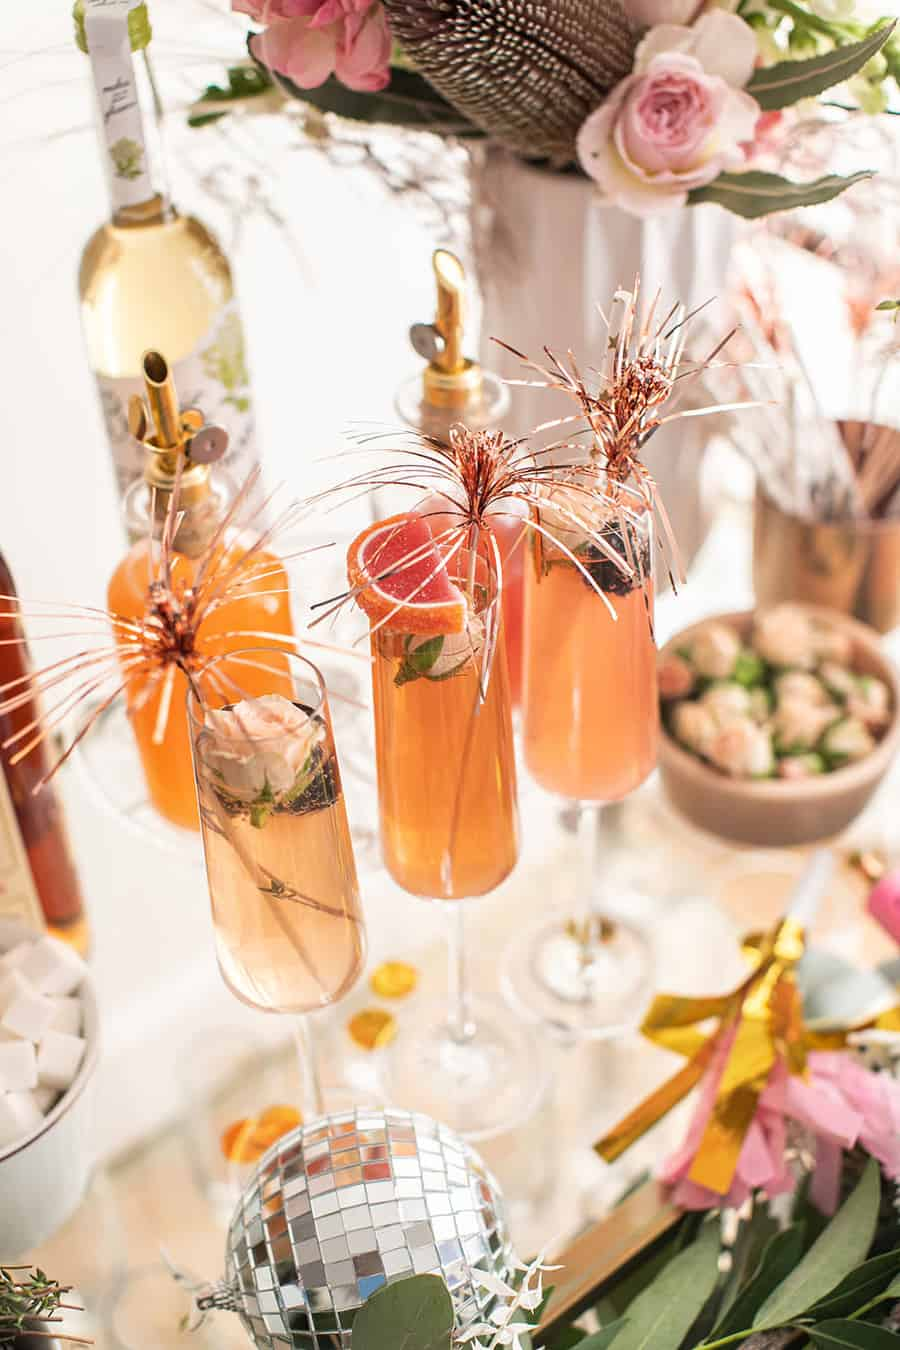 Festive Champagne cocktails for New Year's Eve with flowers, sparklers and berries.